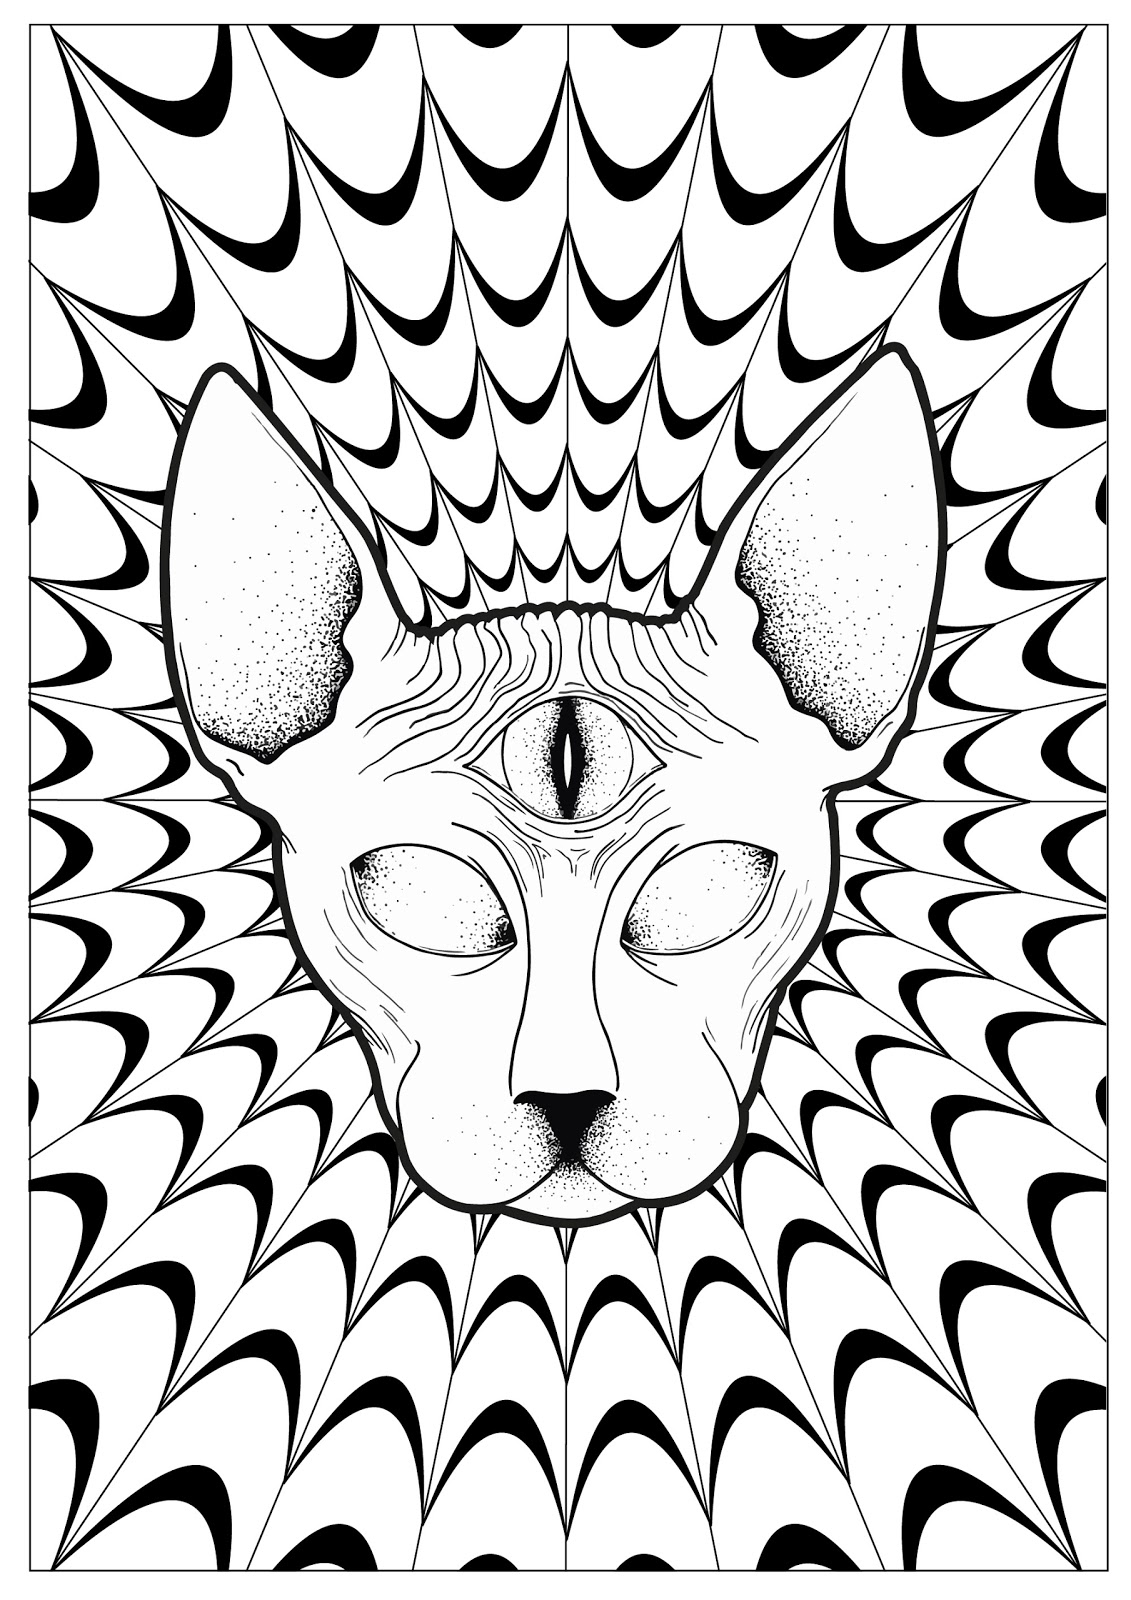 psychedelic coloring pages psychedelic coloring pages coloring home psychedelic coloring pages